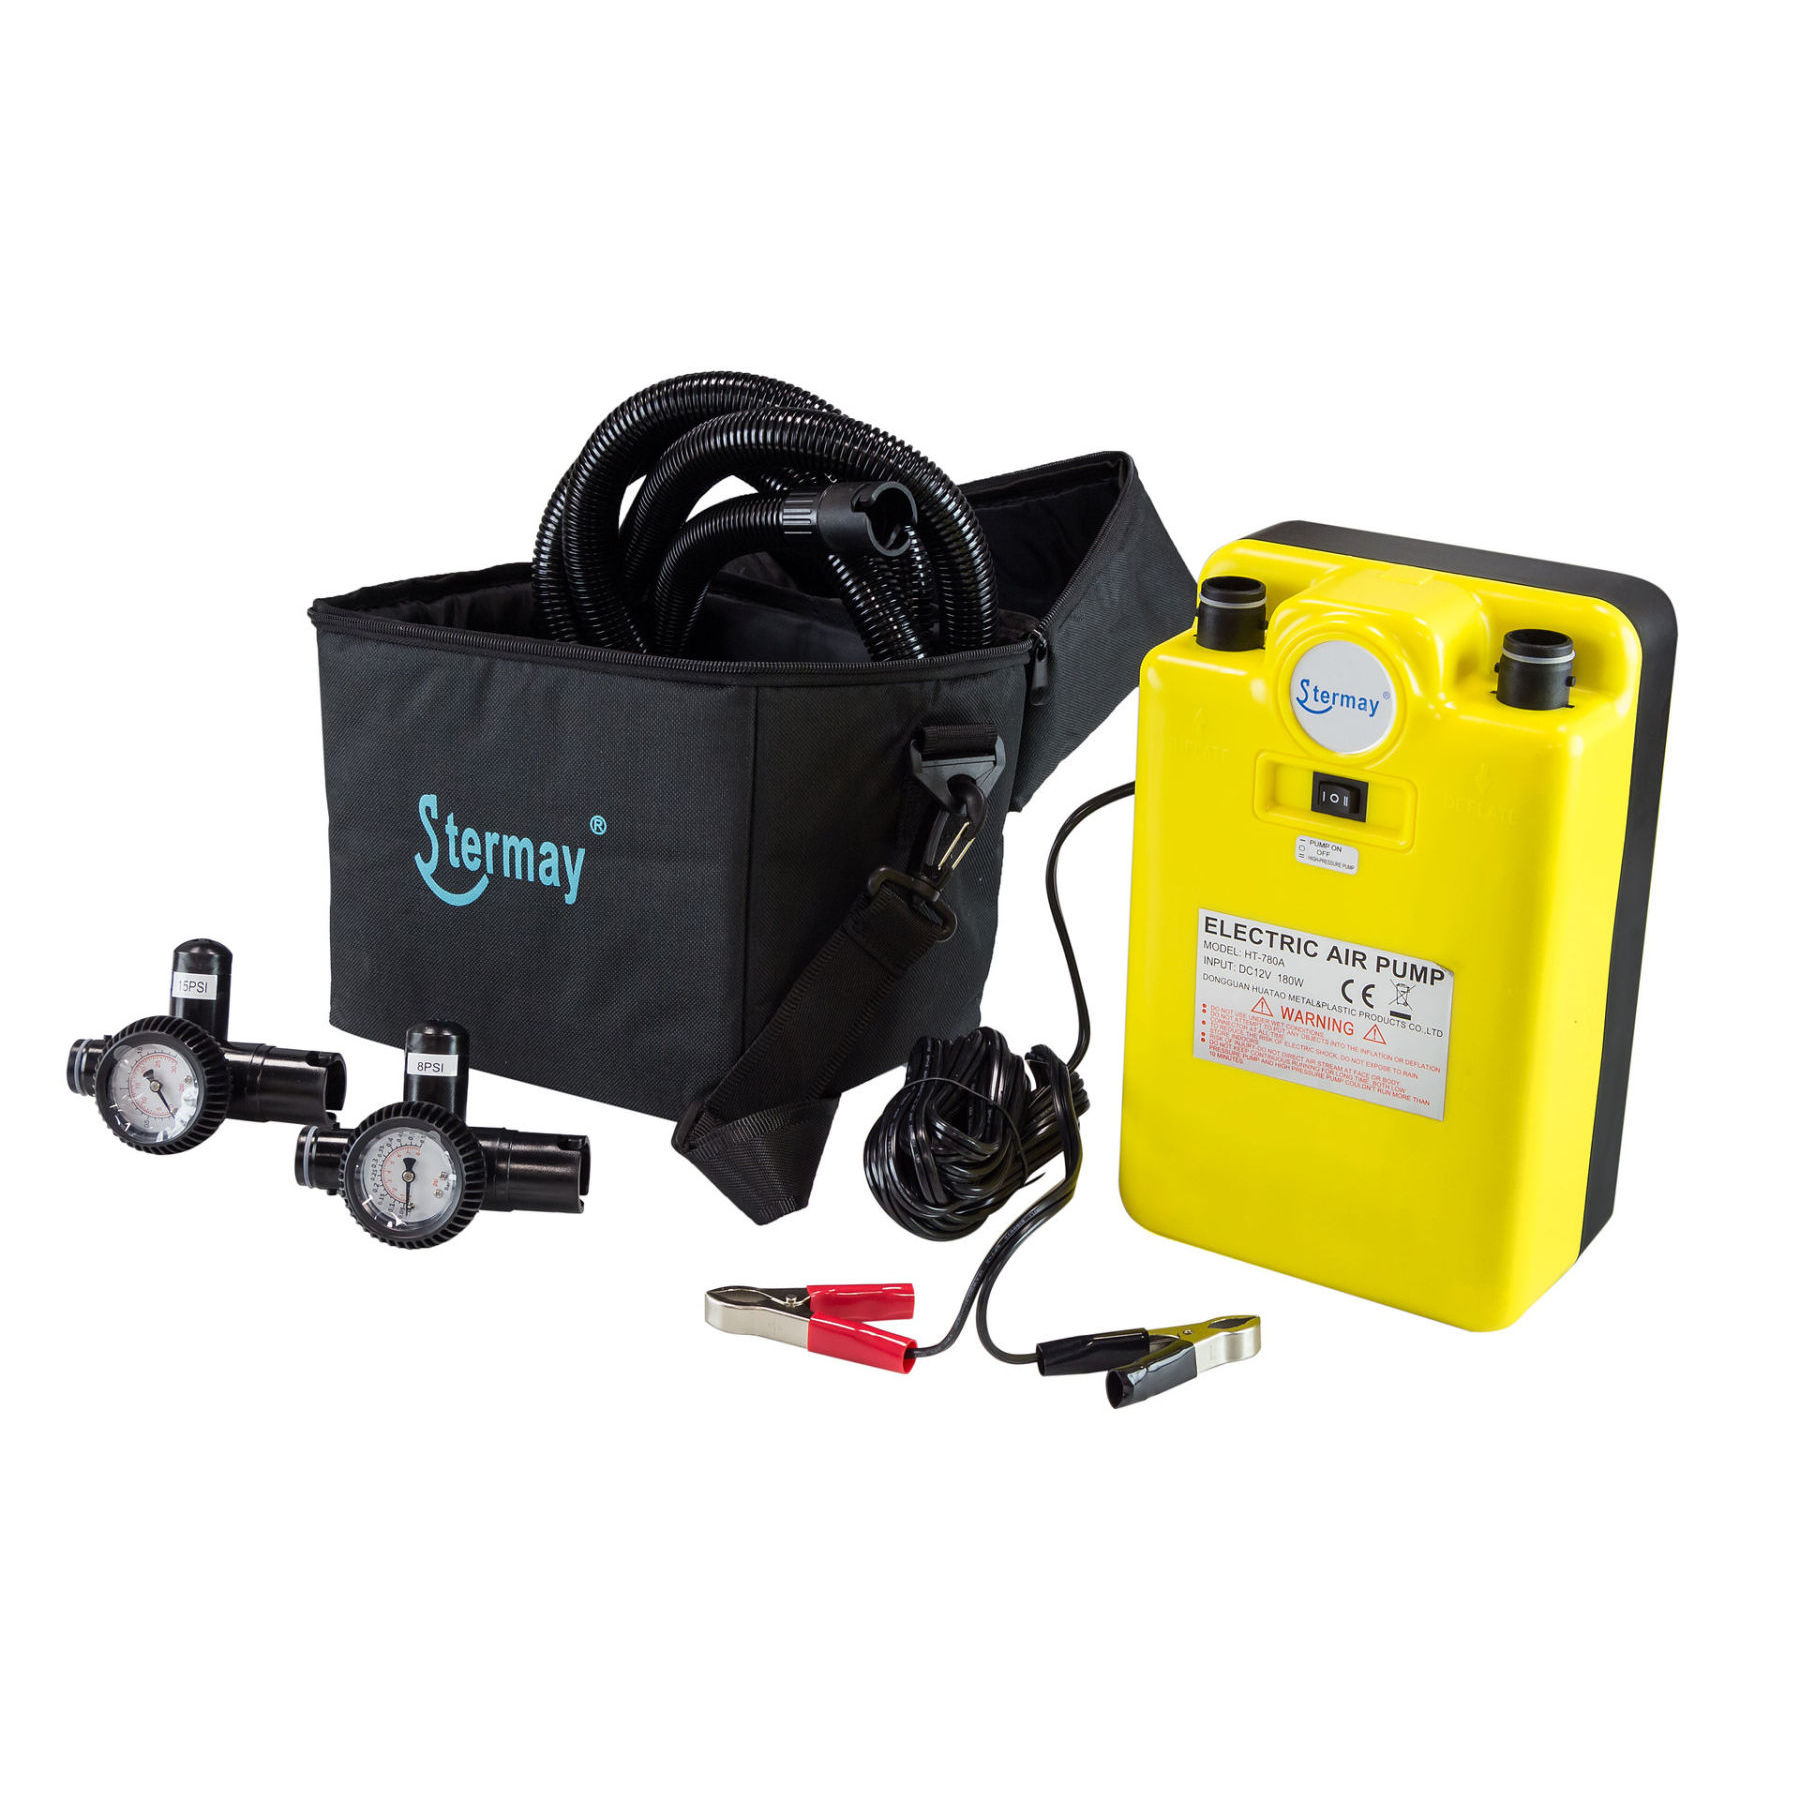 High Pressure Electric Stermay Pump With Crocodiles, 12 V